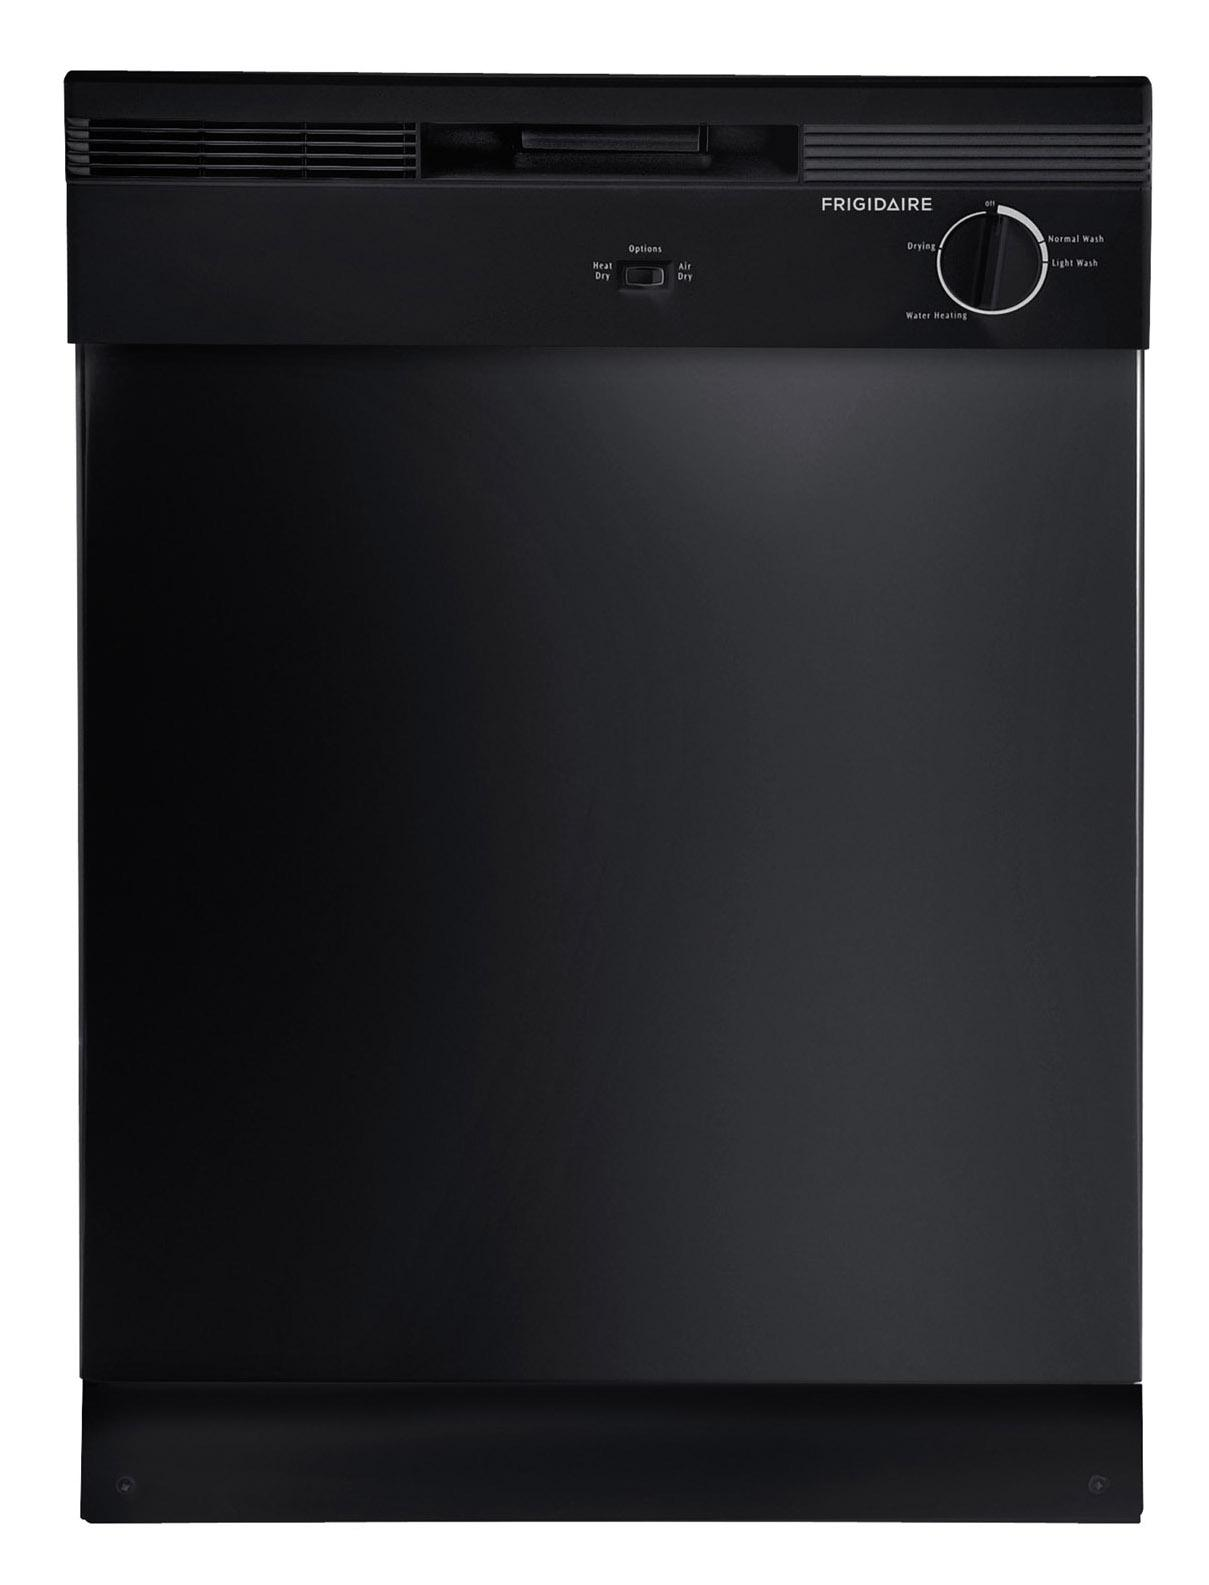 "Frigidaire Dishwashers 24"" Built-In Tall Tub Dishwasher - Item Number: FBD2400KB"